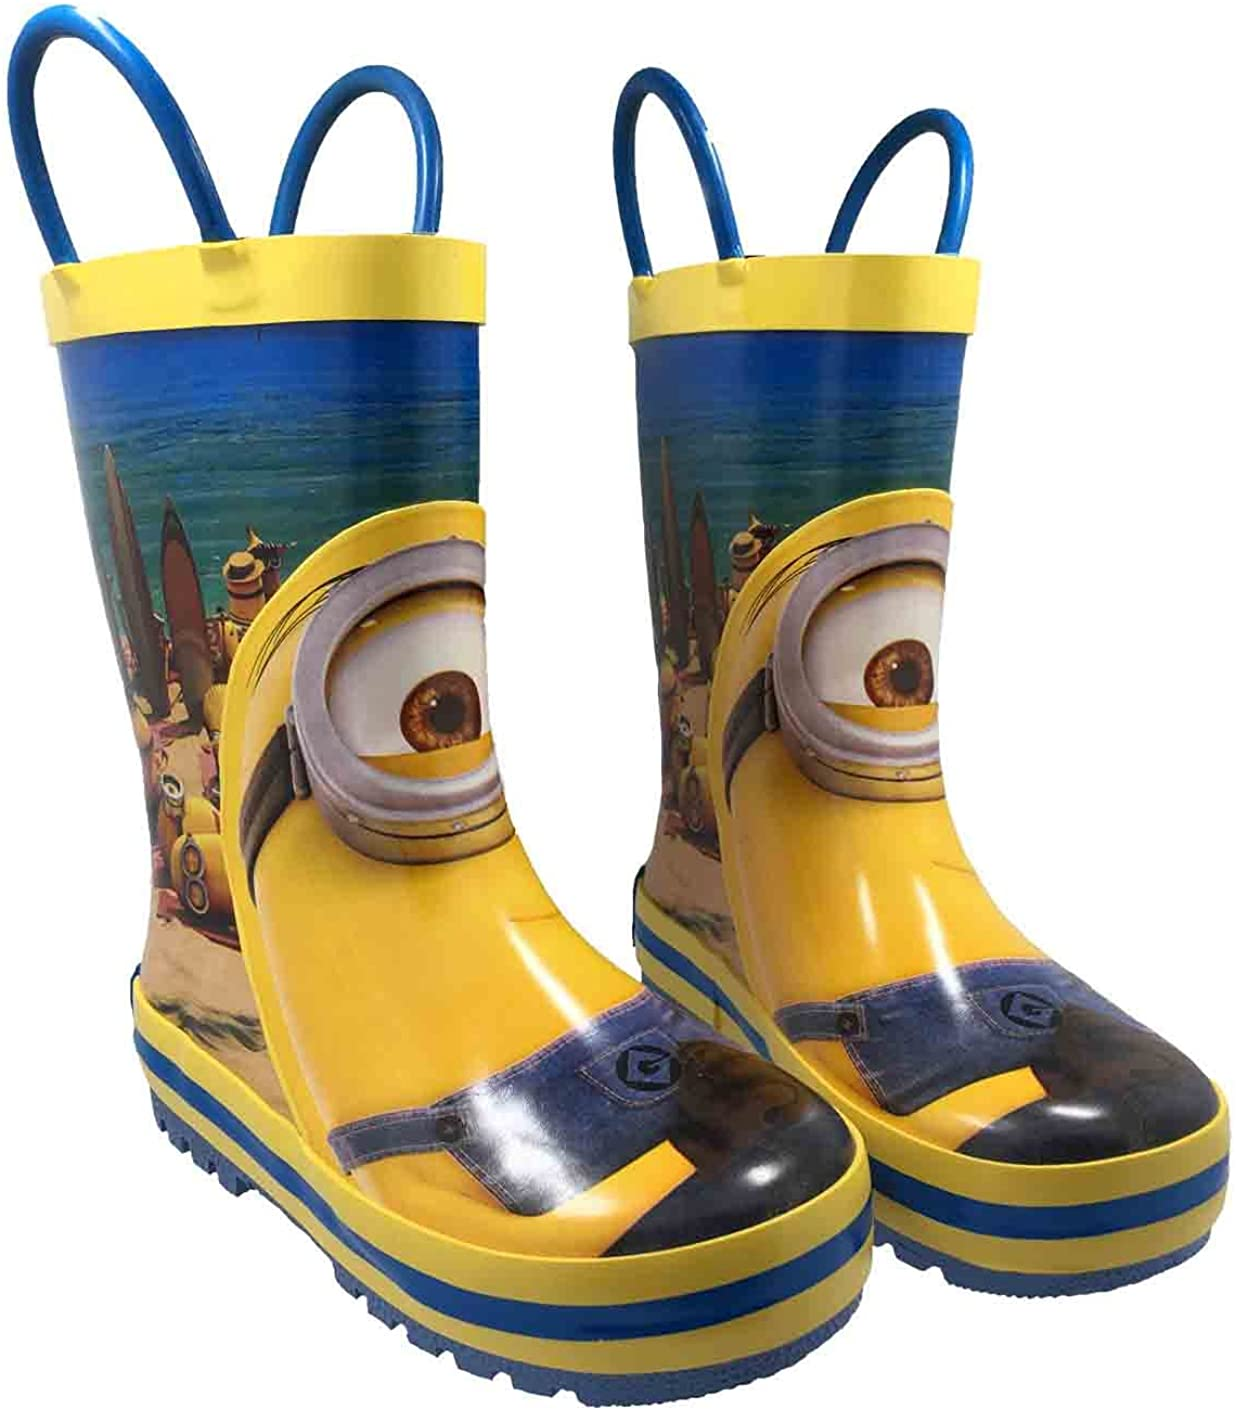 Minions Despicable Me Kids Rubber Character Rain Boots with Easy-On Handles